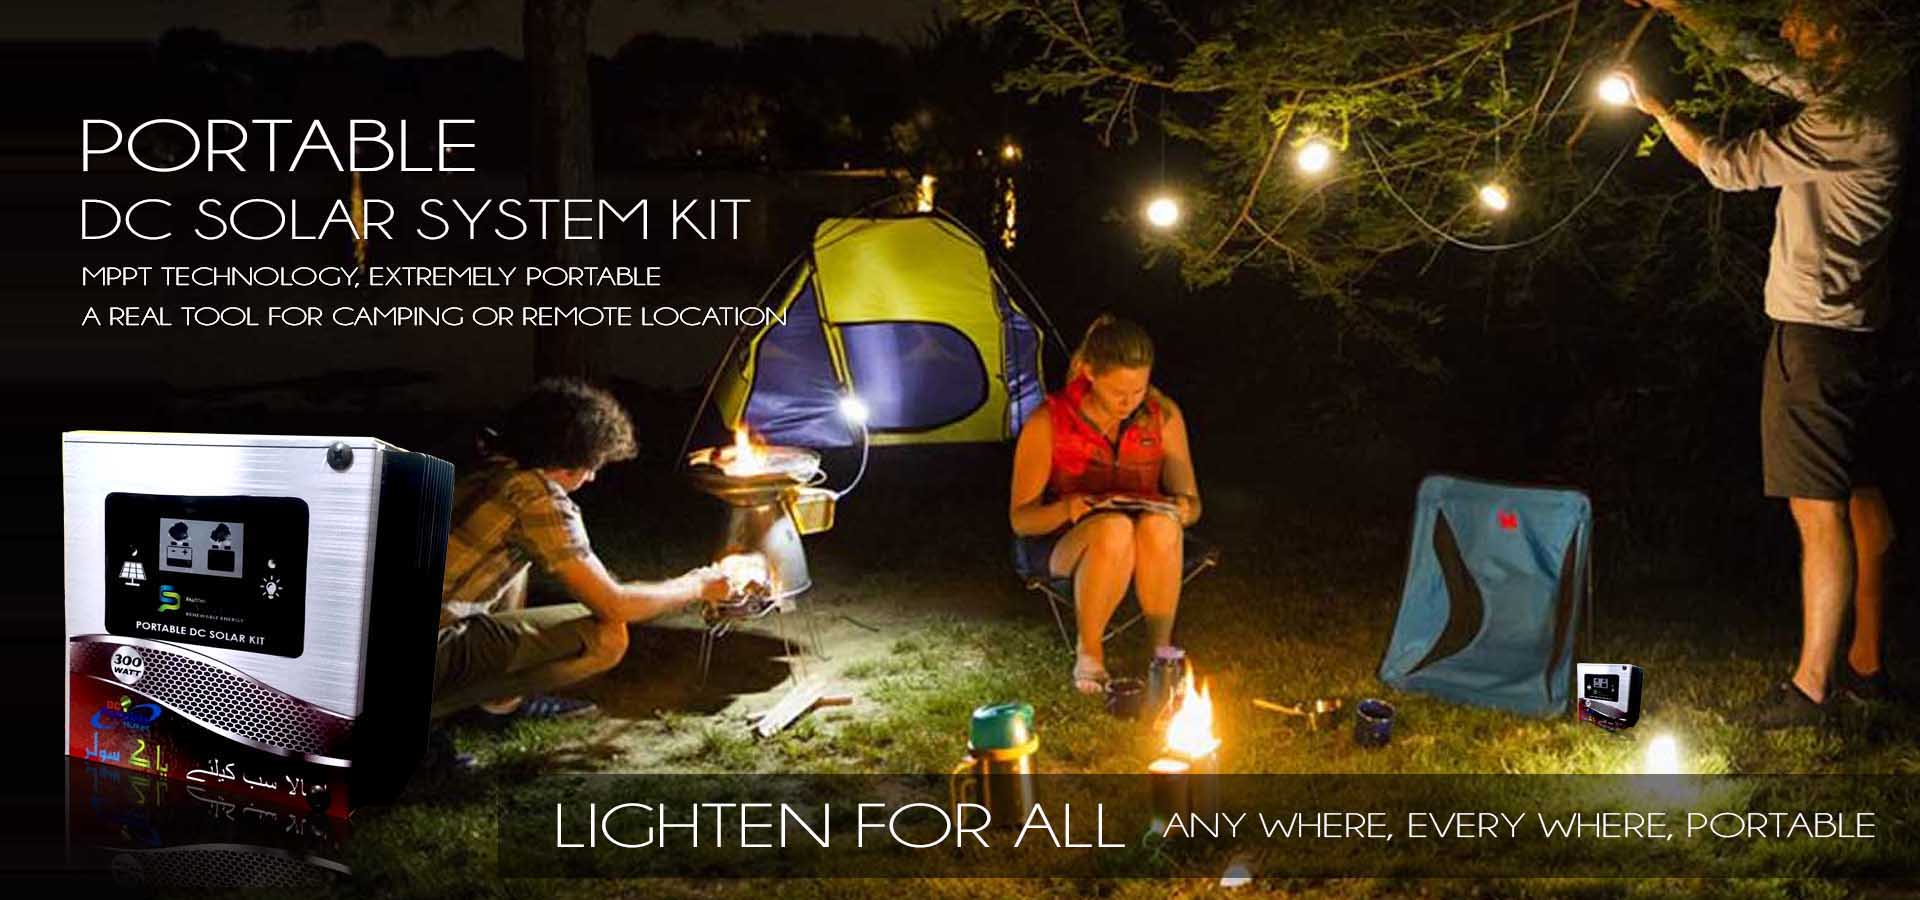 Solar DC system portable MPPT kit for family camping